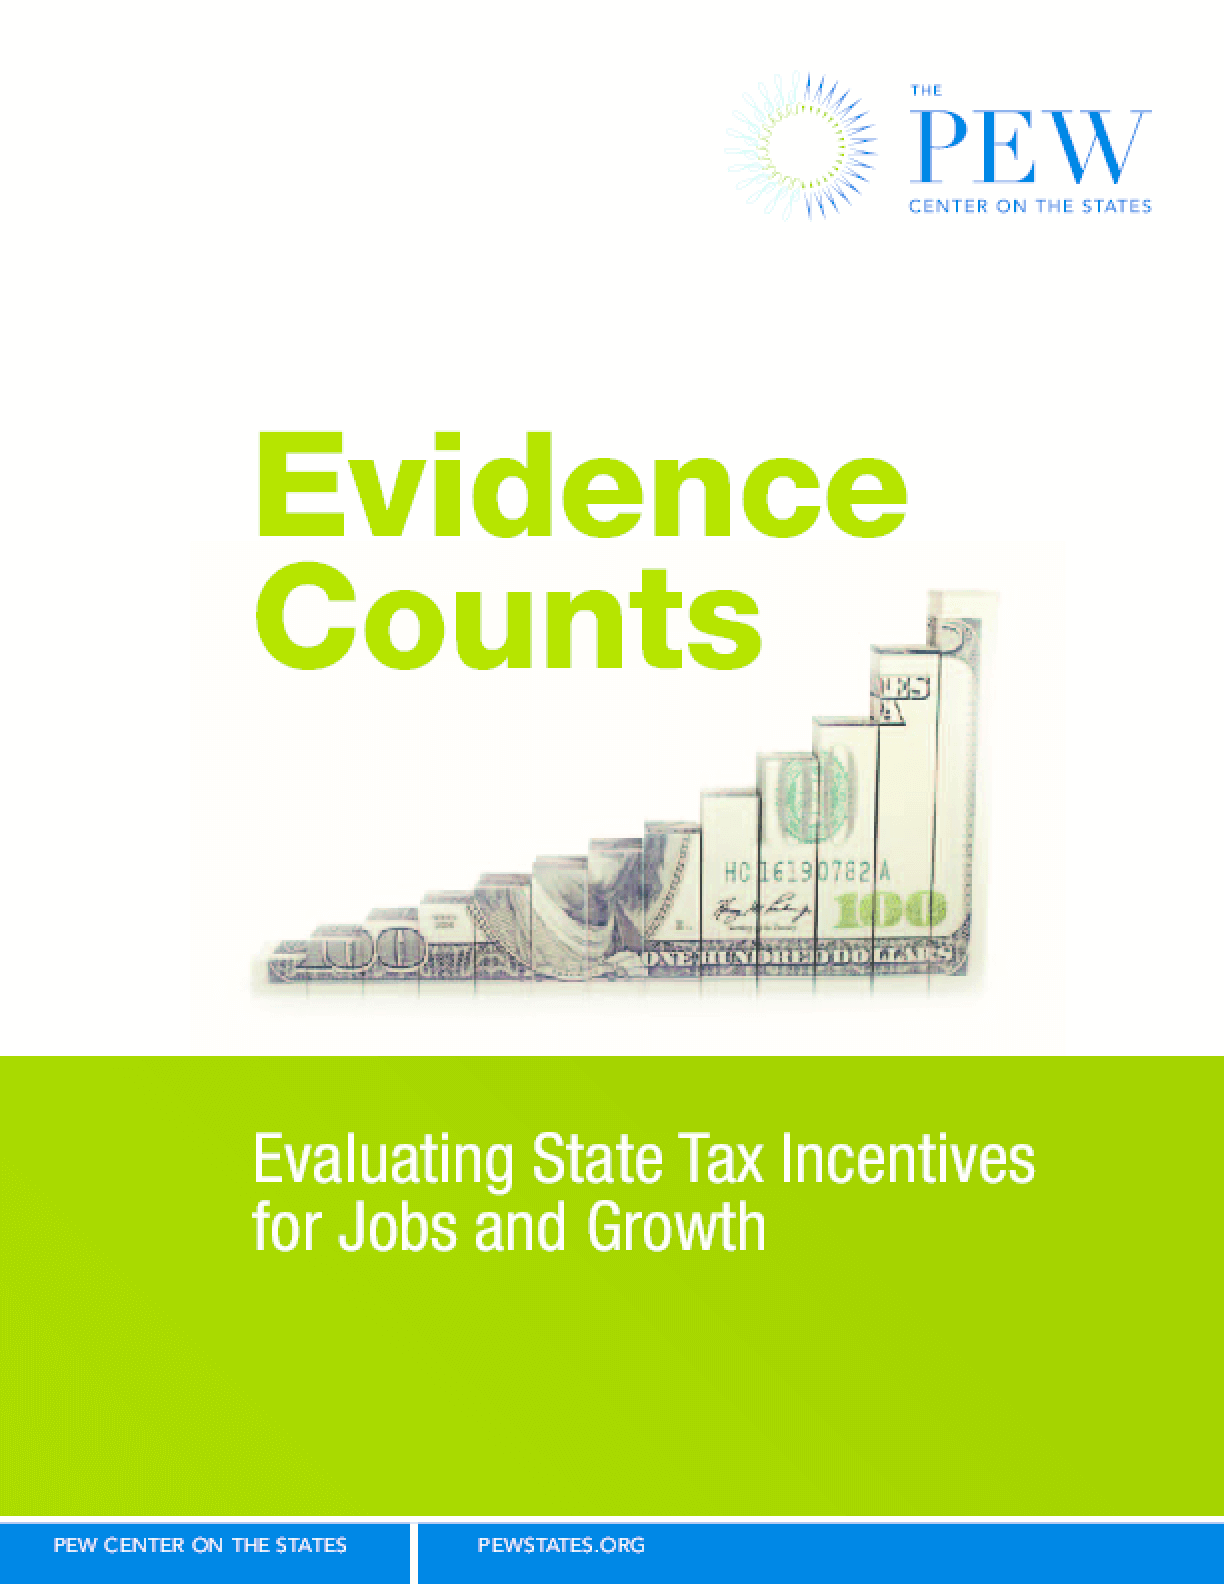 Evidence Counts: Evaluating State Tax Incentives for Jobs and Growth